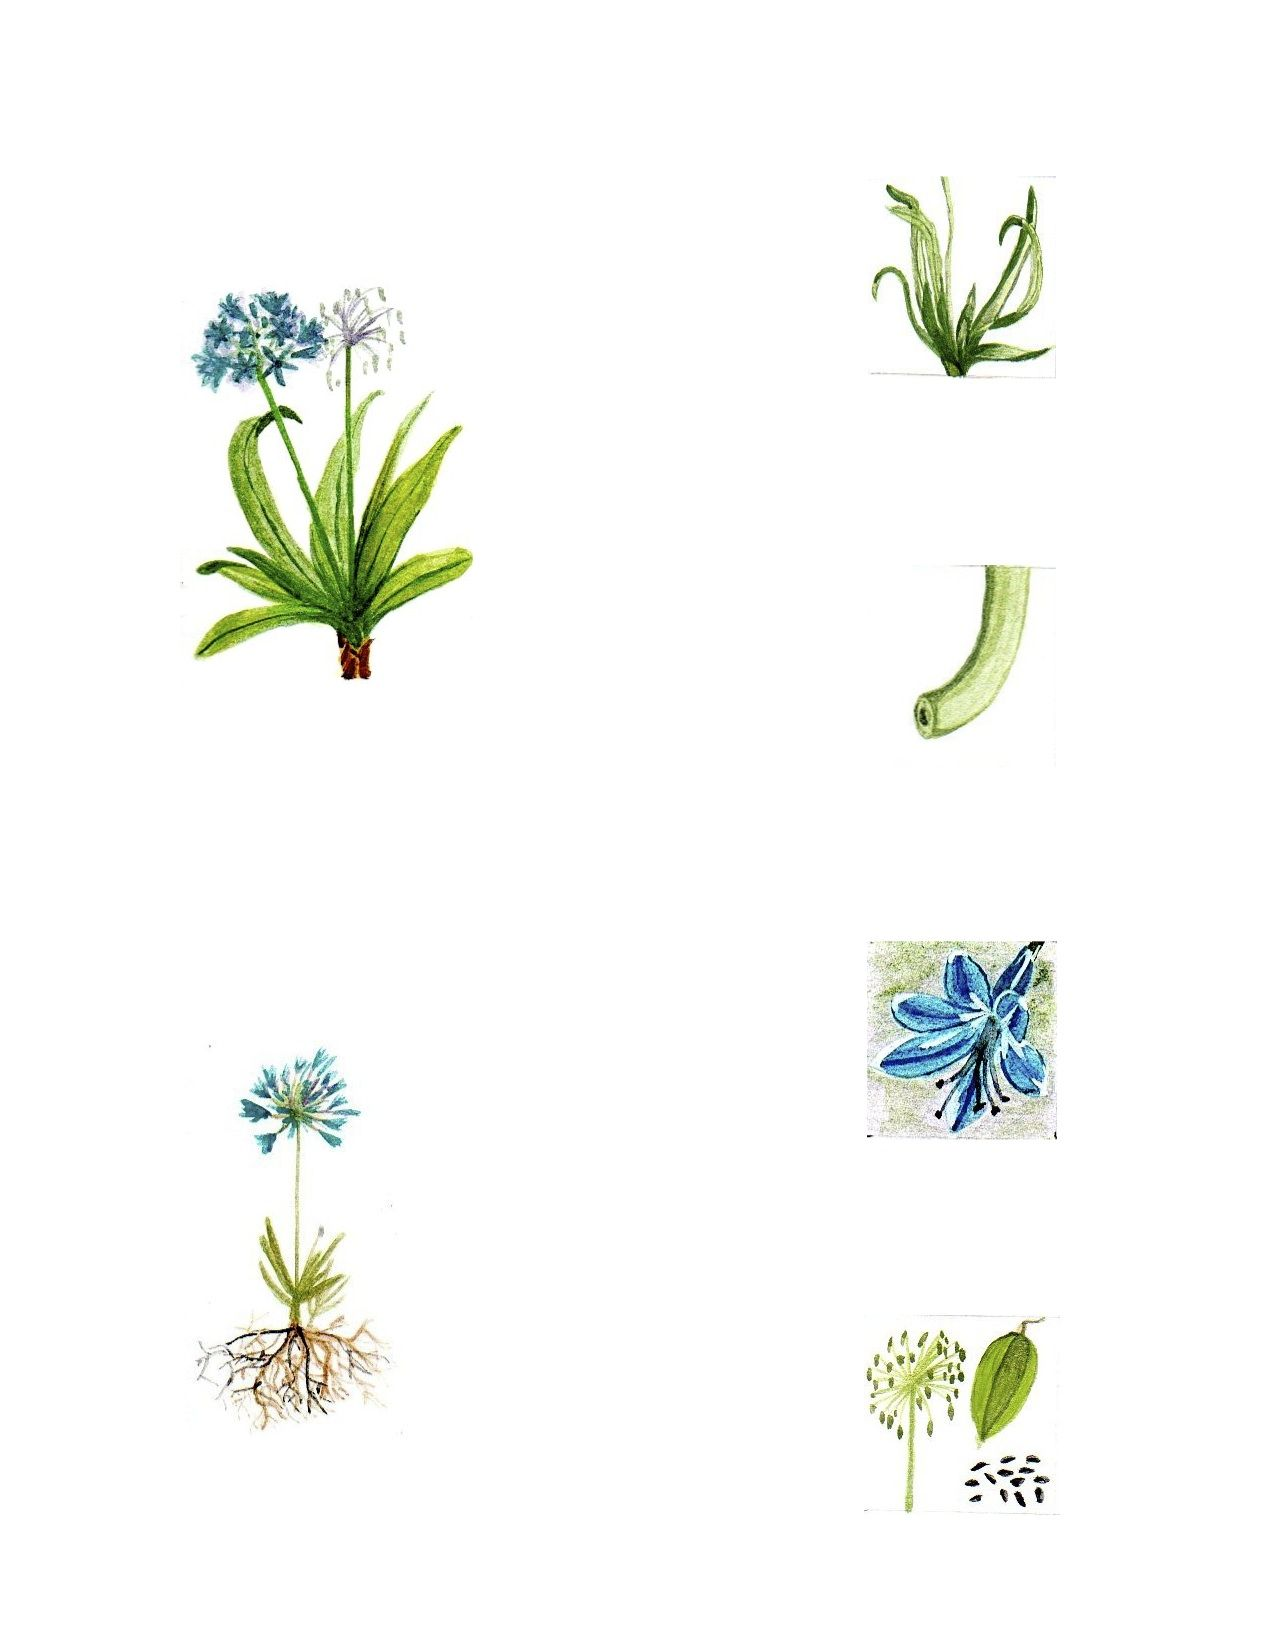 Agapanthus africanus.  Plants Collection 4.  Ink and Watercolor on paper drawing. By Diego A.